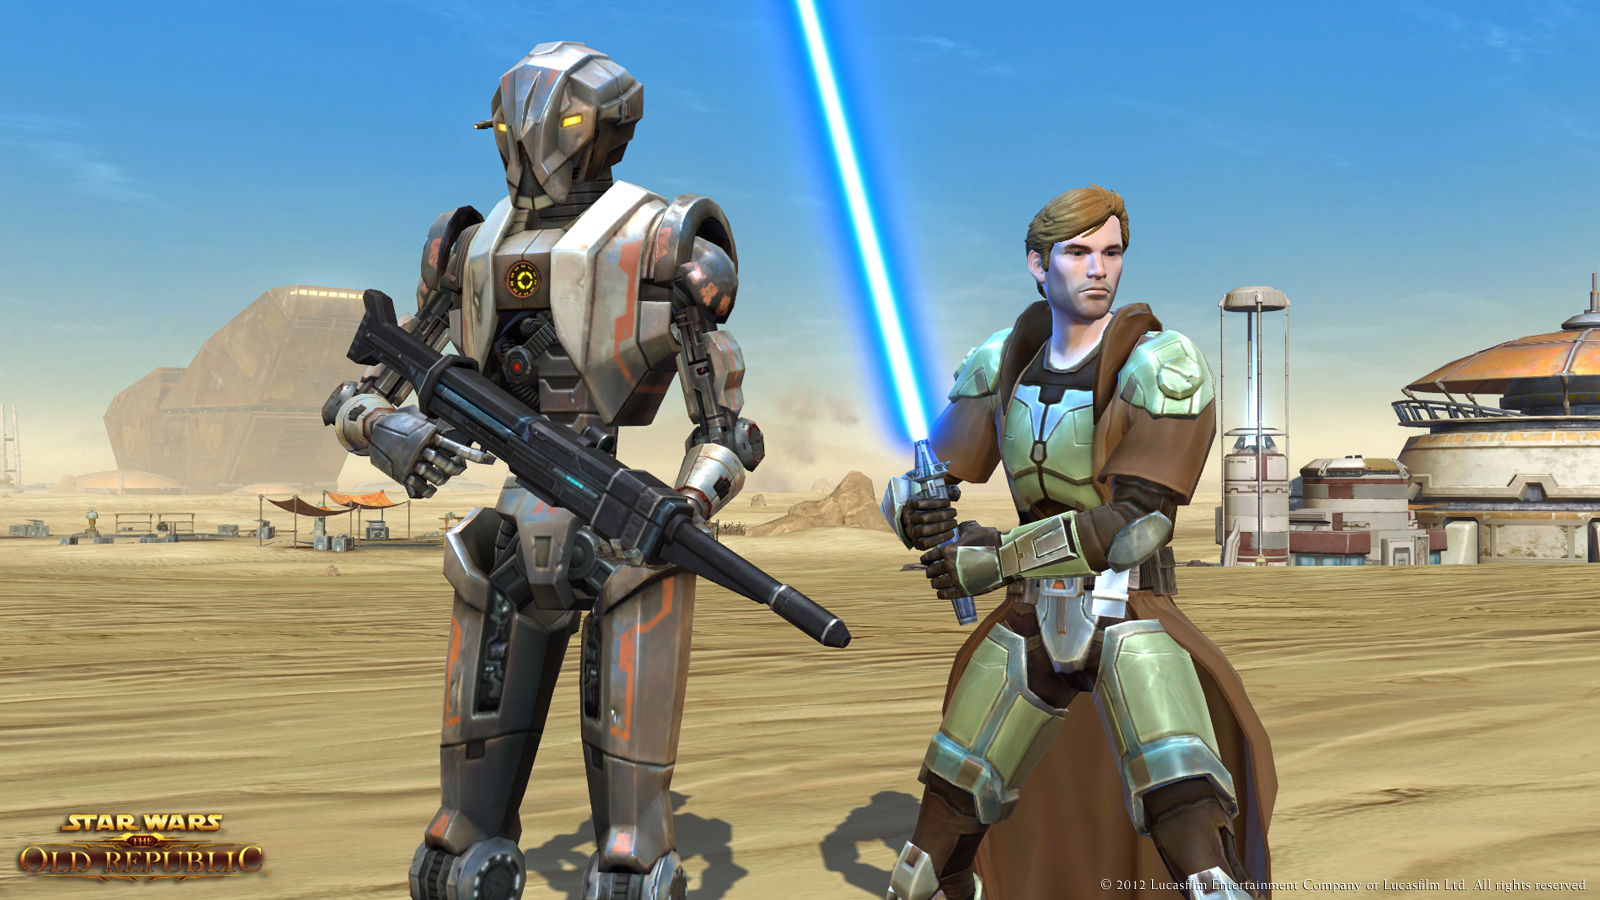 Star Wars: The Old Republic Gameplay Screenshot 2